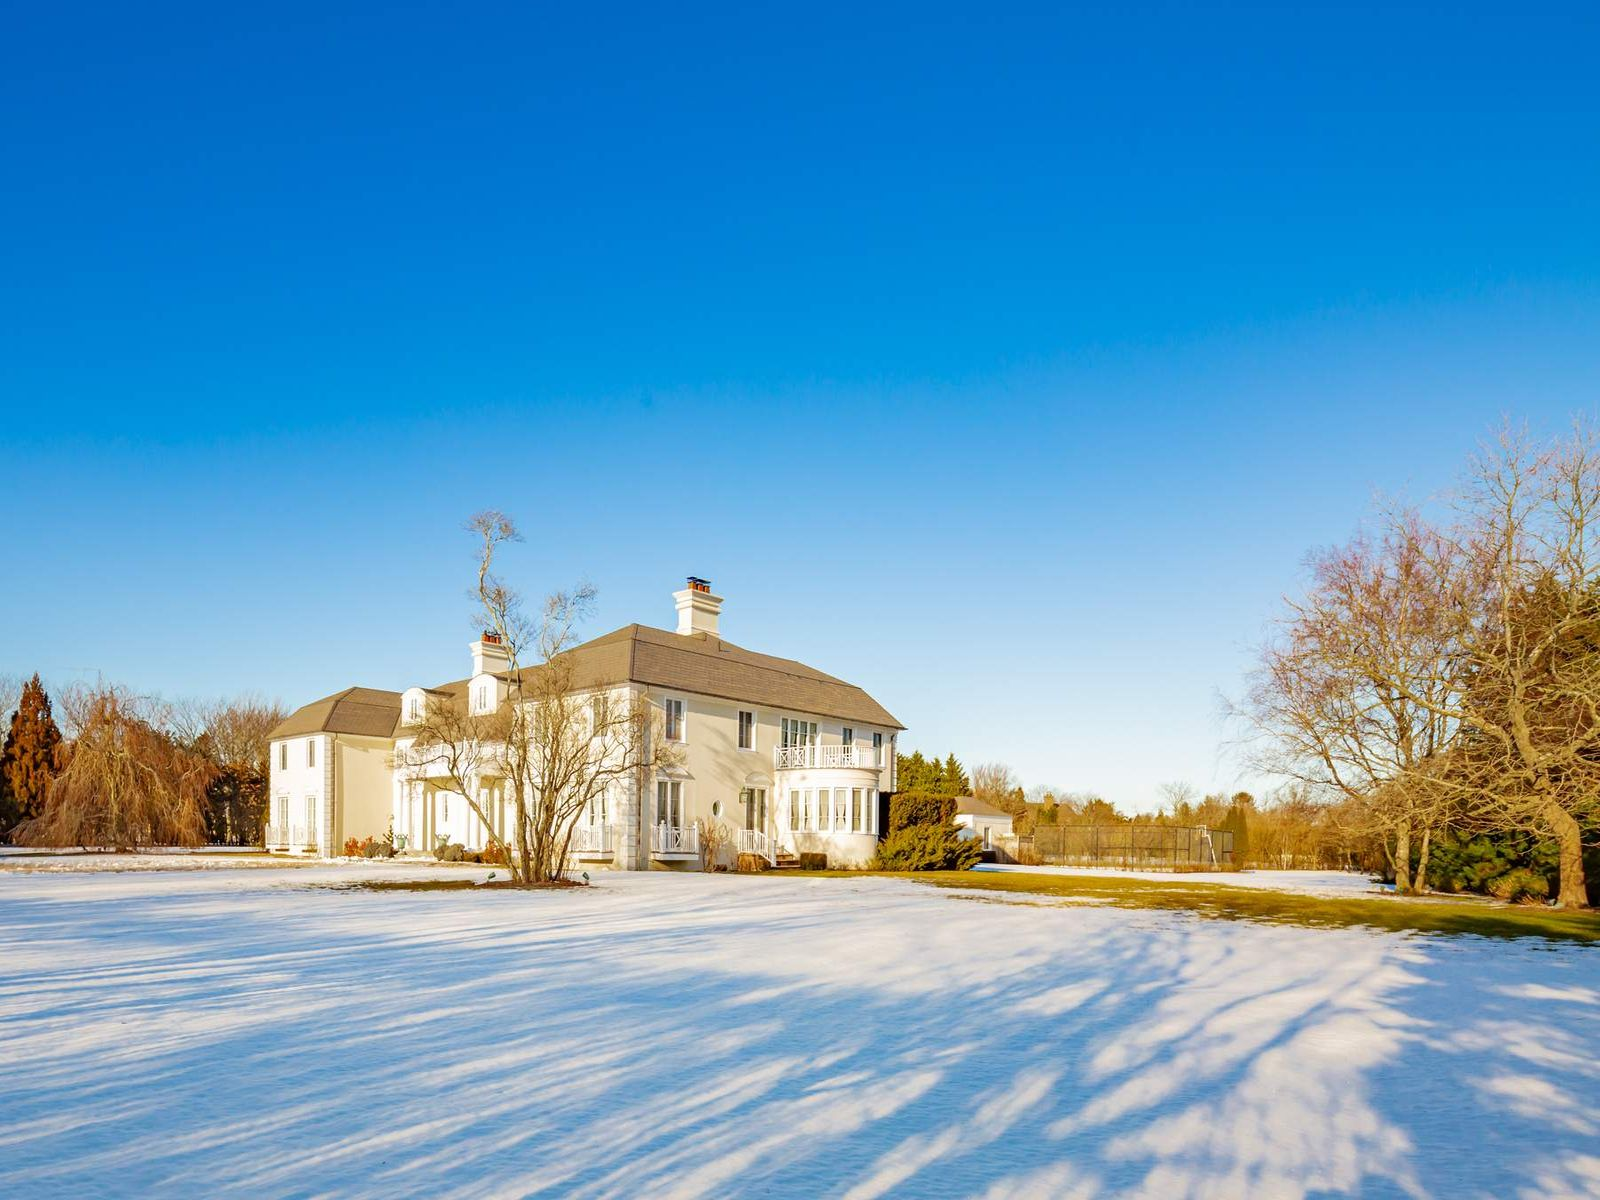 French Country Southampton Estate, Water Mill NY Single Family Home - Hamptons Real Estate